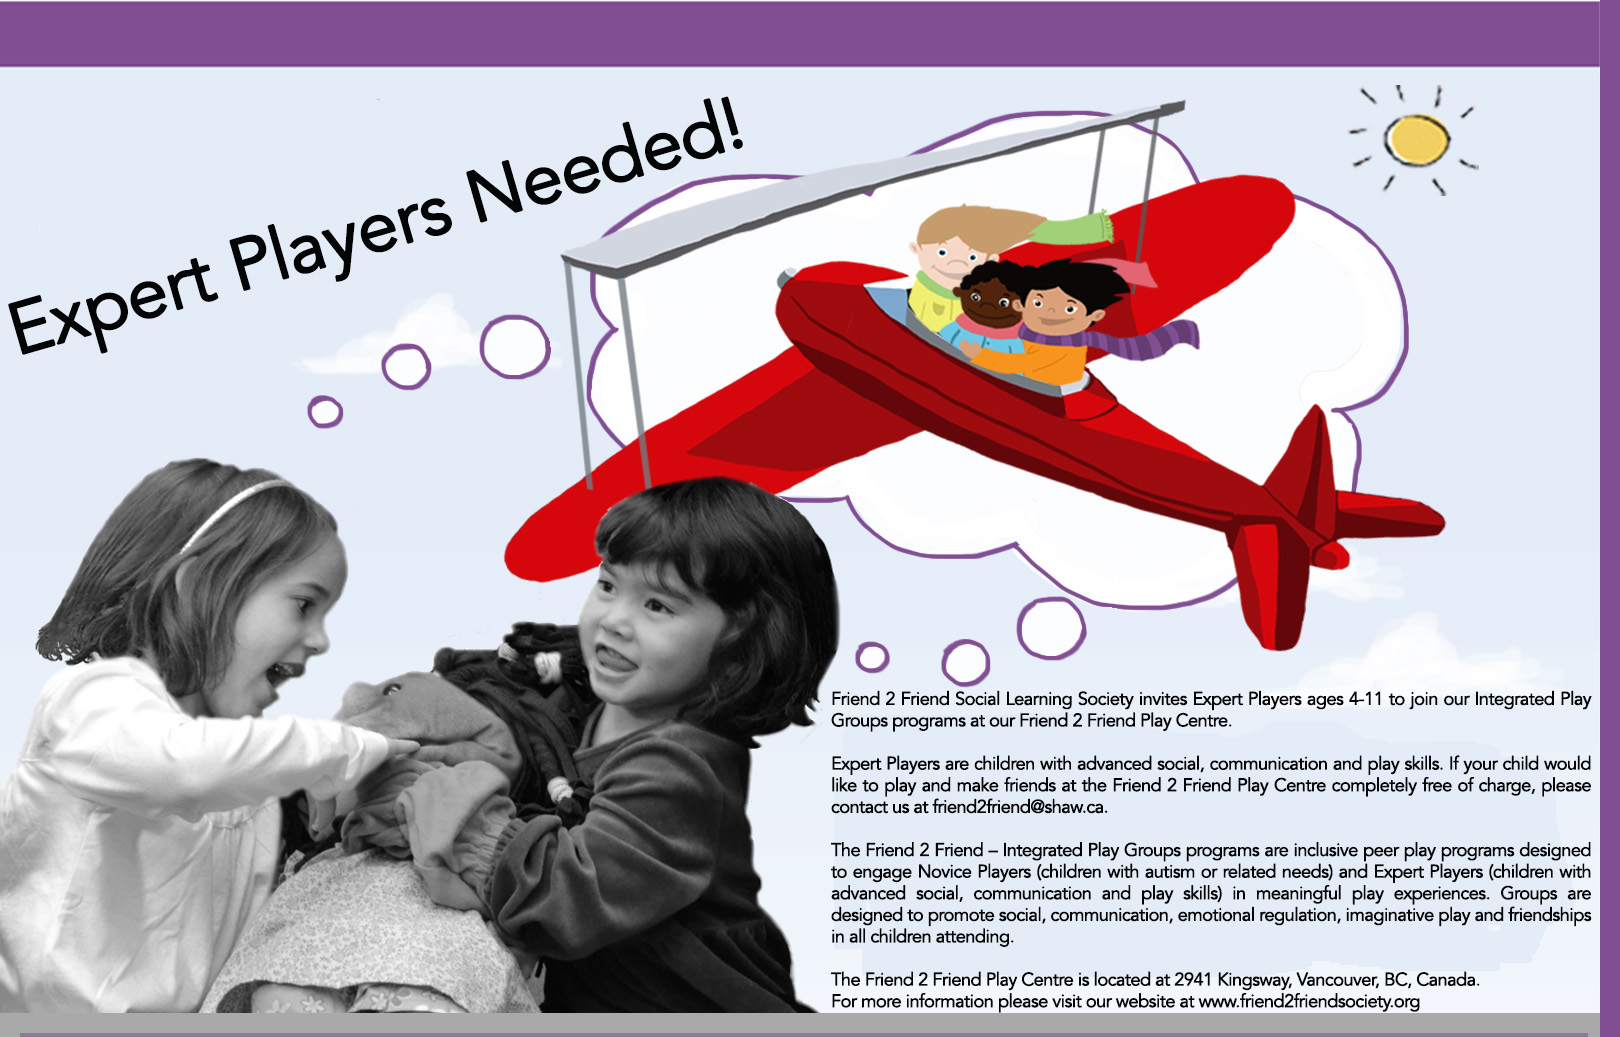 Integrated Play Groups Help Children >> Expert Players Needed Friend 2 Friend Social Learning Society